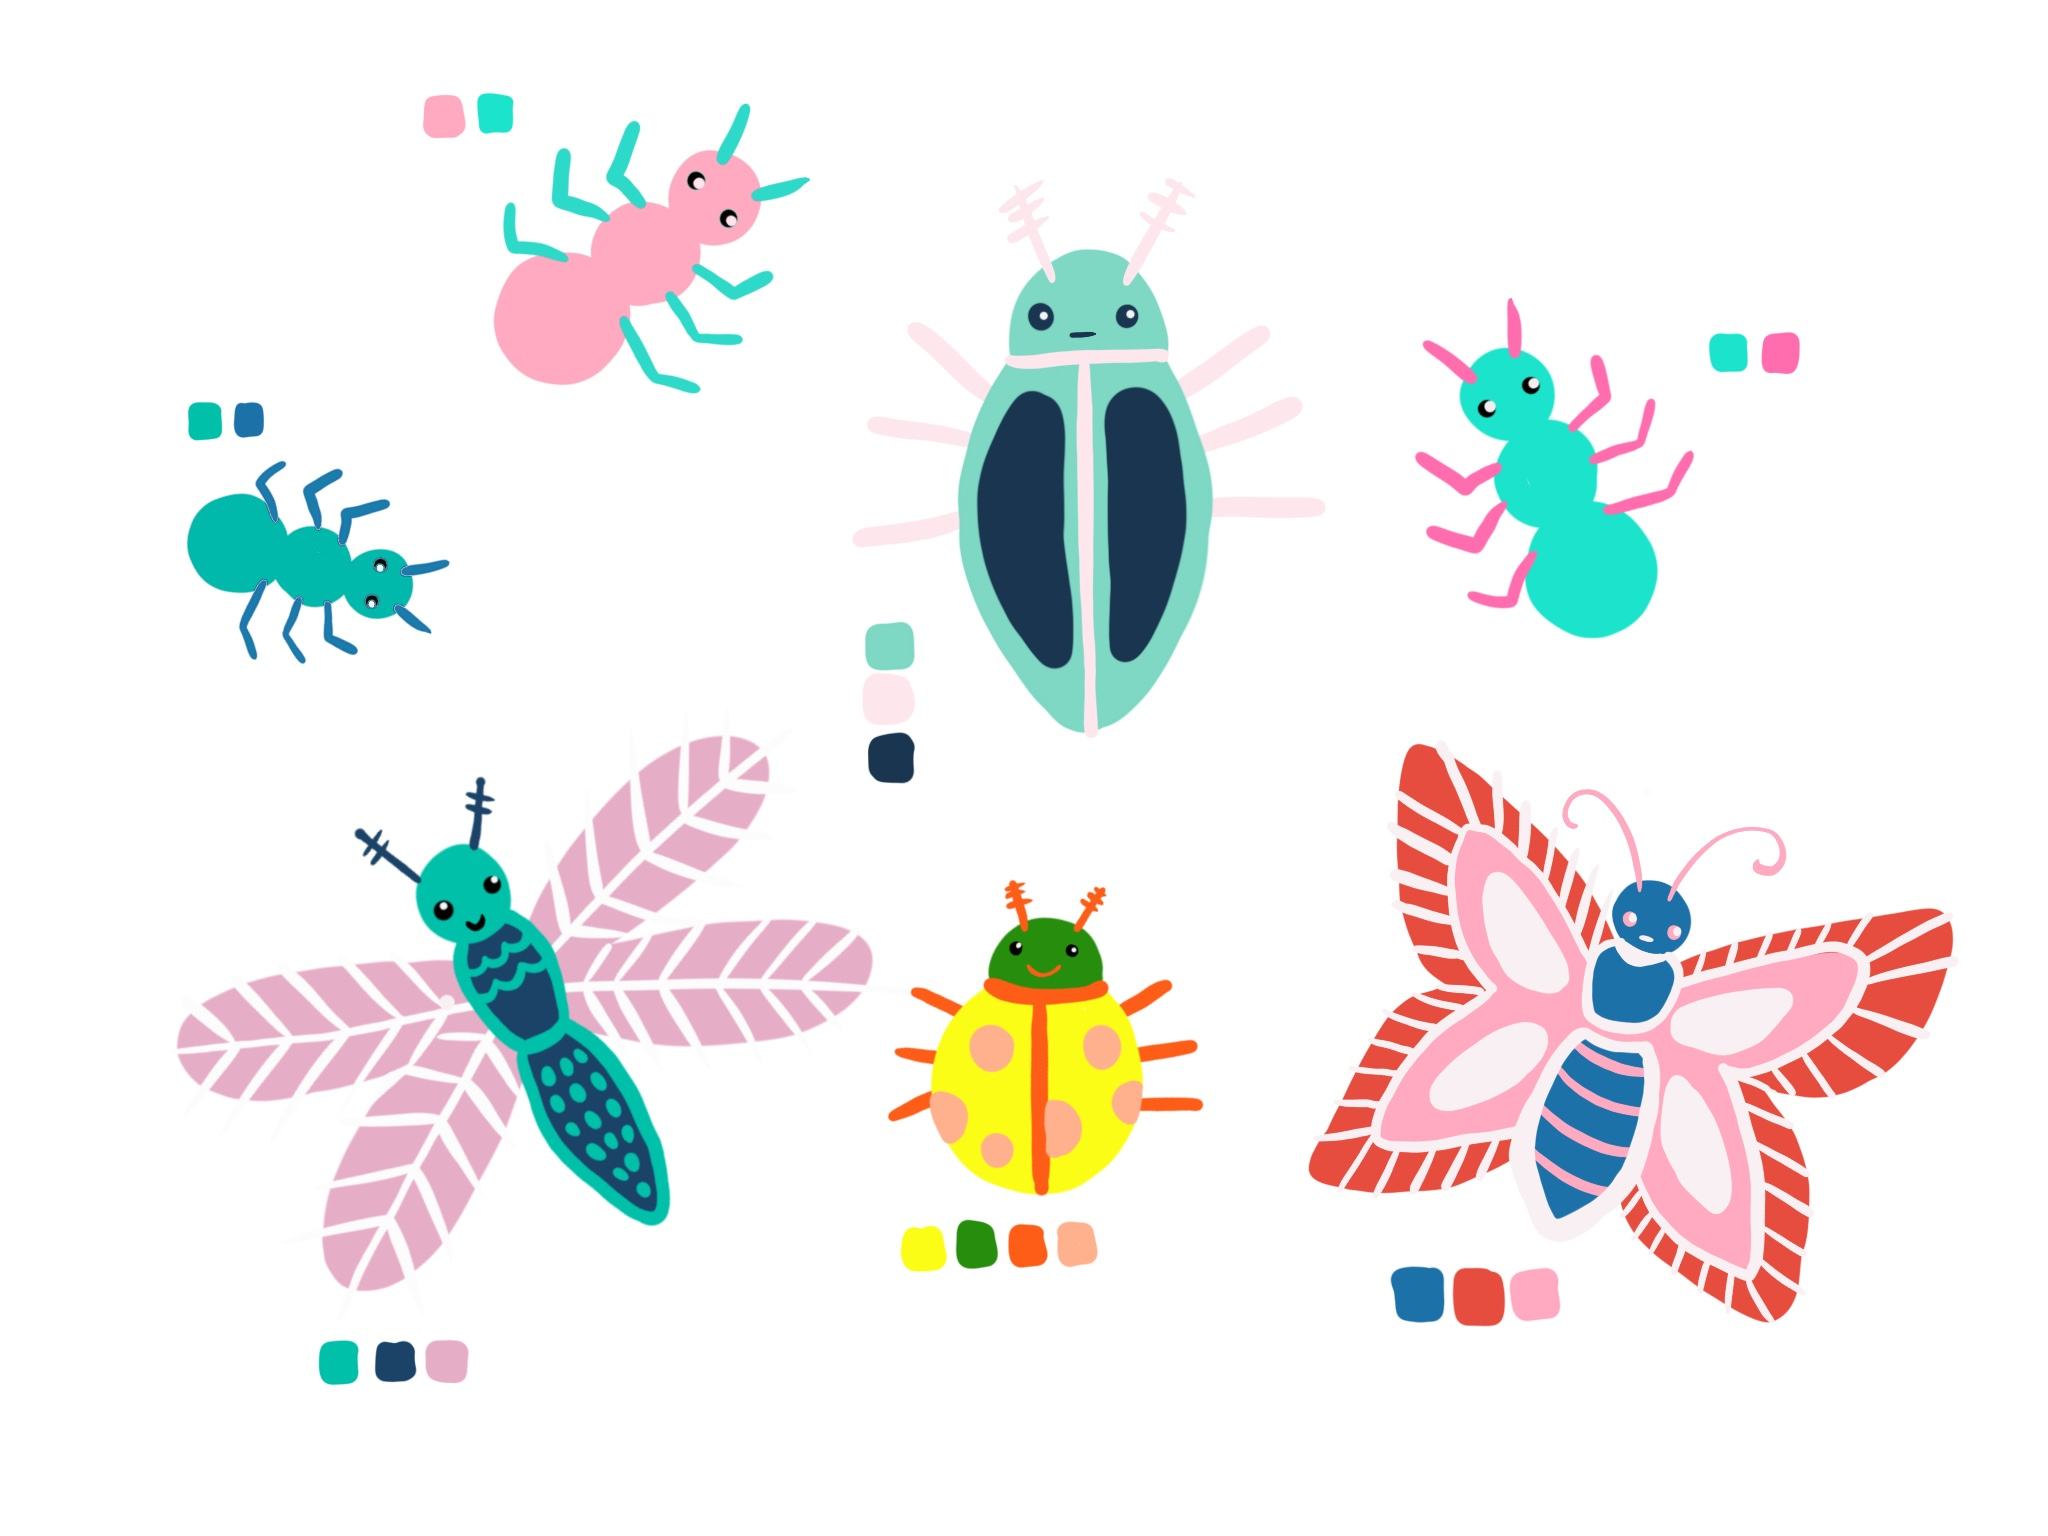 Bo's Insect Friends